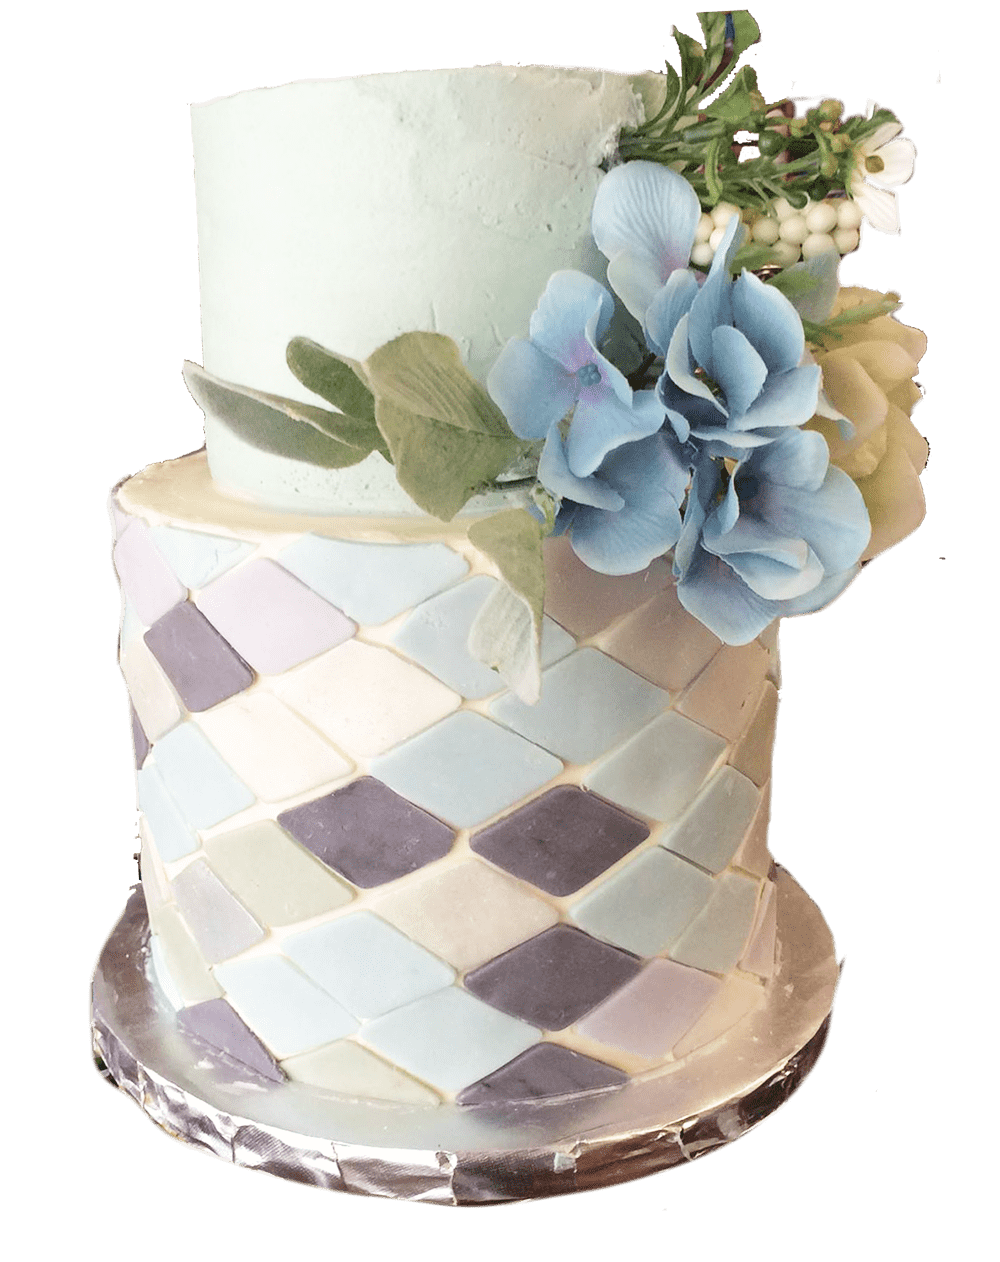 two-tier cake with blue flowers